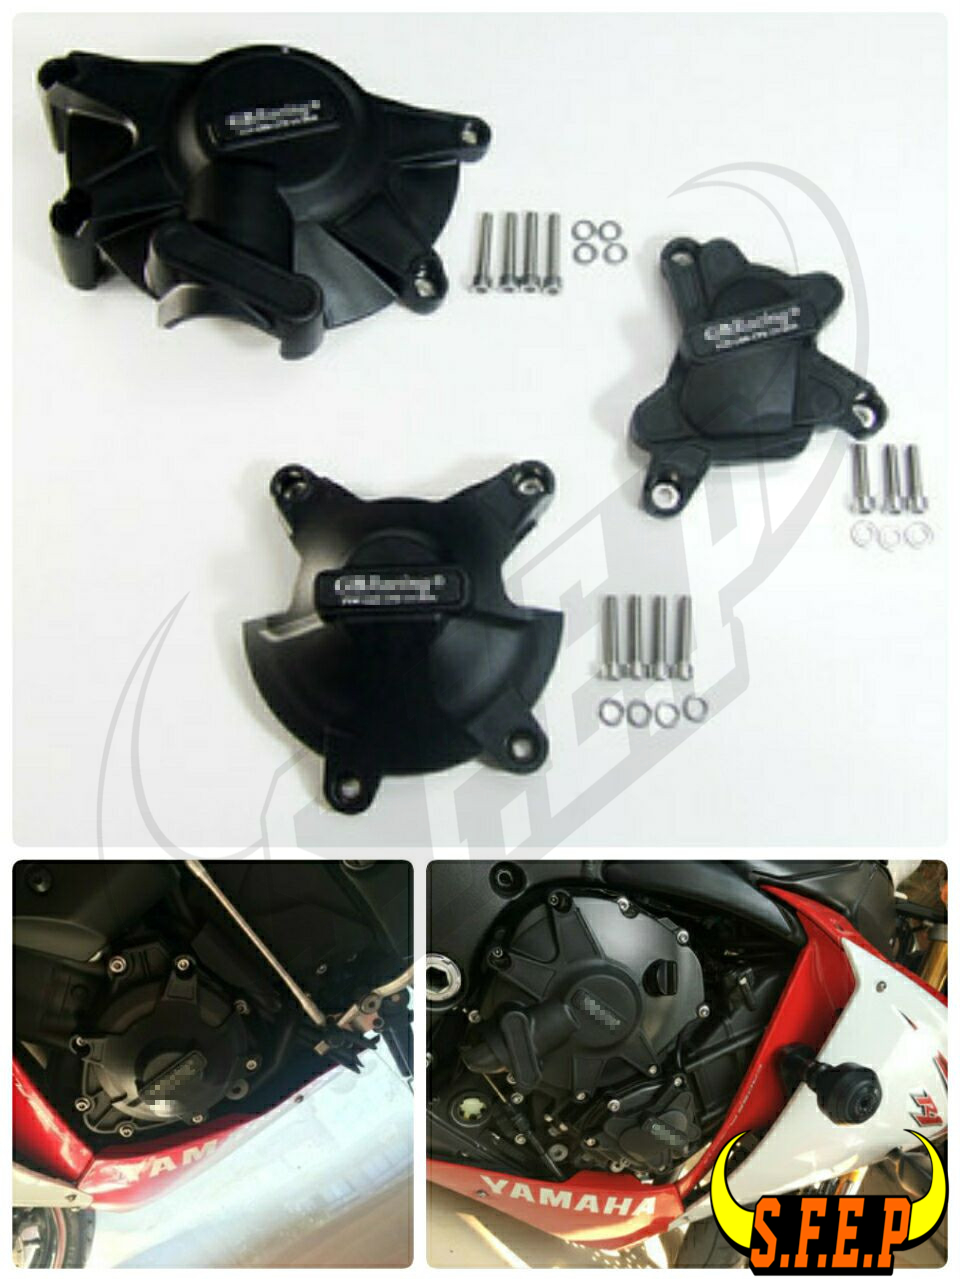 Motorcycle Engine Case Guard Protector Cover GB Racing For Yamaha YZF-R1 2009-2010-2011-2012-2013-2014 Black